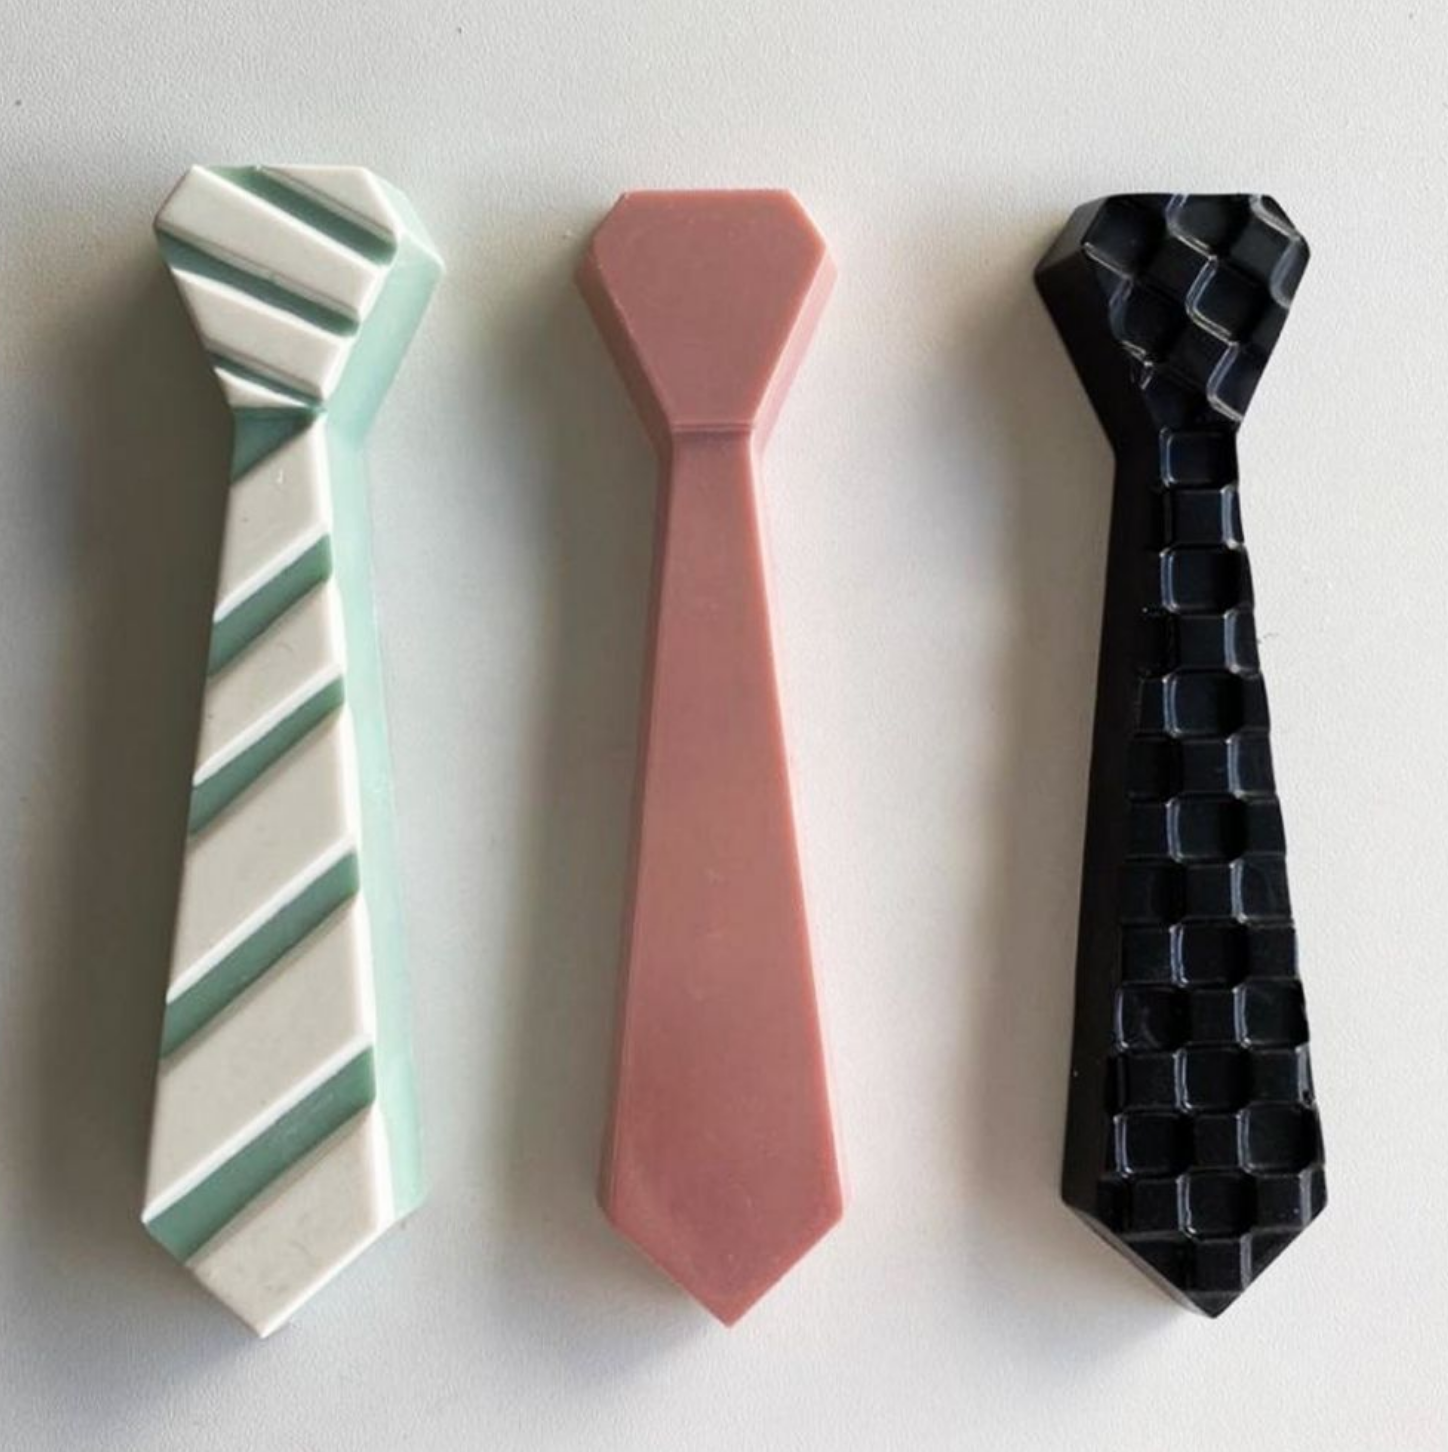 Daddy's Ties - 3 Part Mold - PRE-ORDER - Arriving Jan. 19th